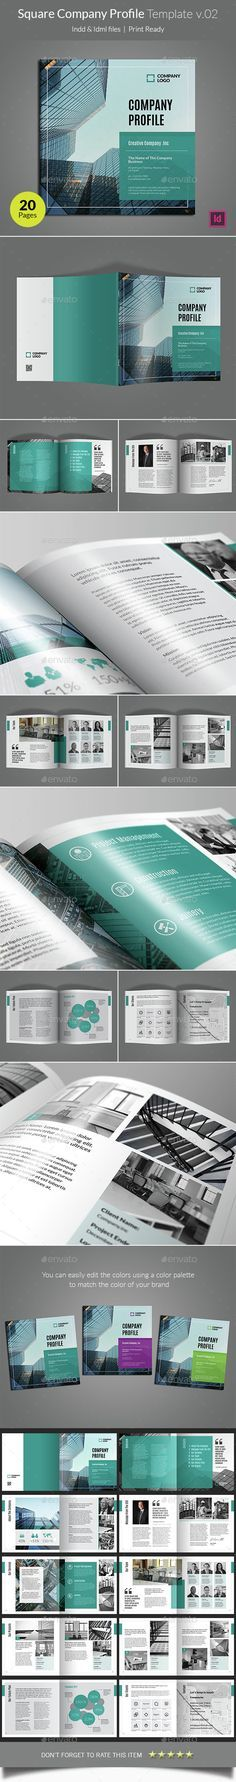 Company Profile Template V02 Company profile, Template and - it company profile template